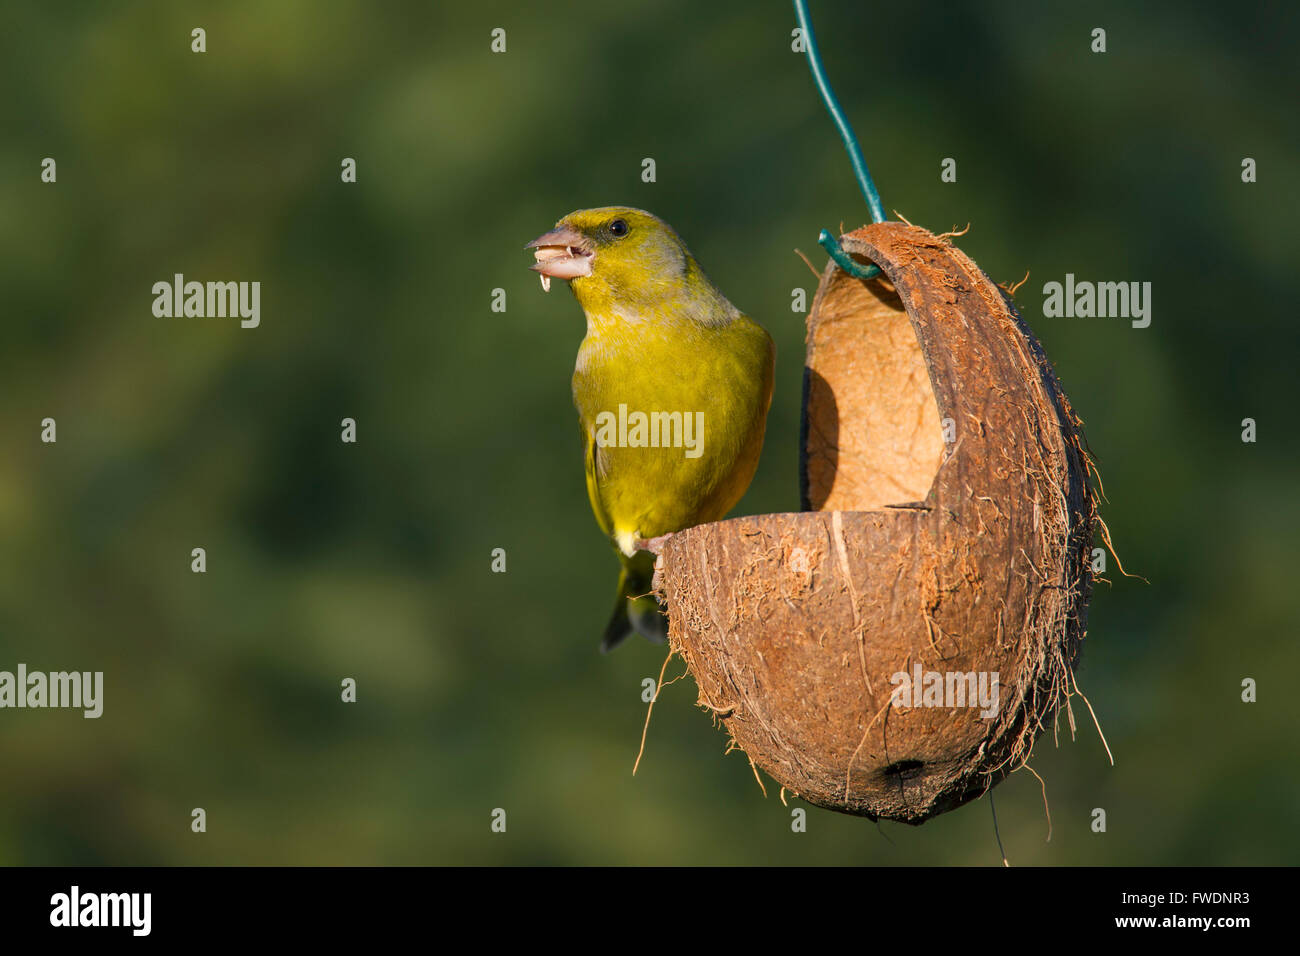 European greenfinch (Chloris chloris / Carduelis chloris) eating seed at garden bird feeder - Stock Image